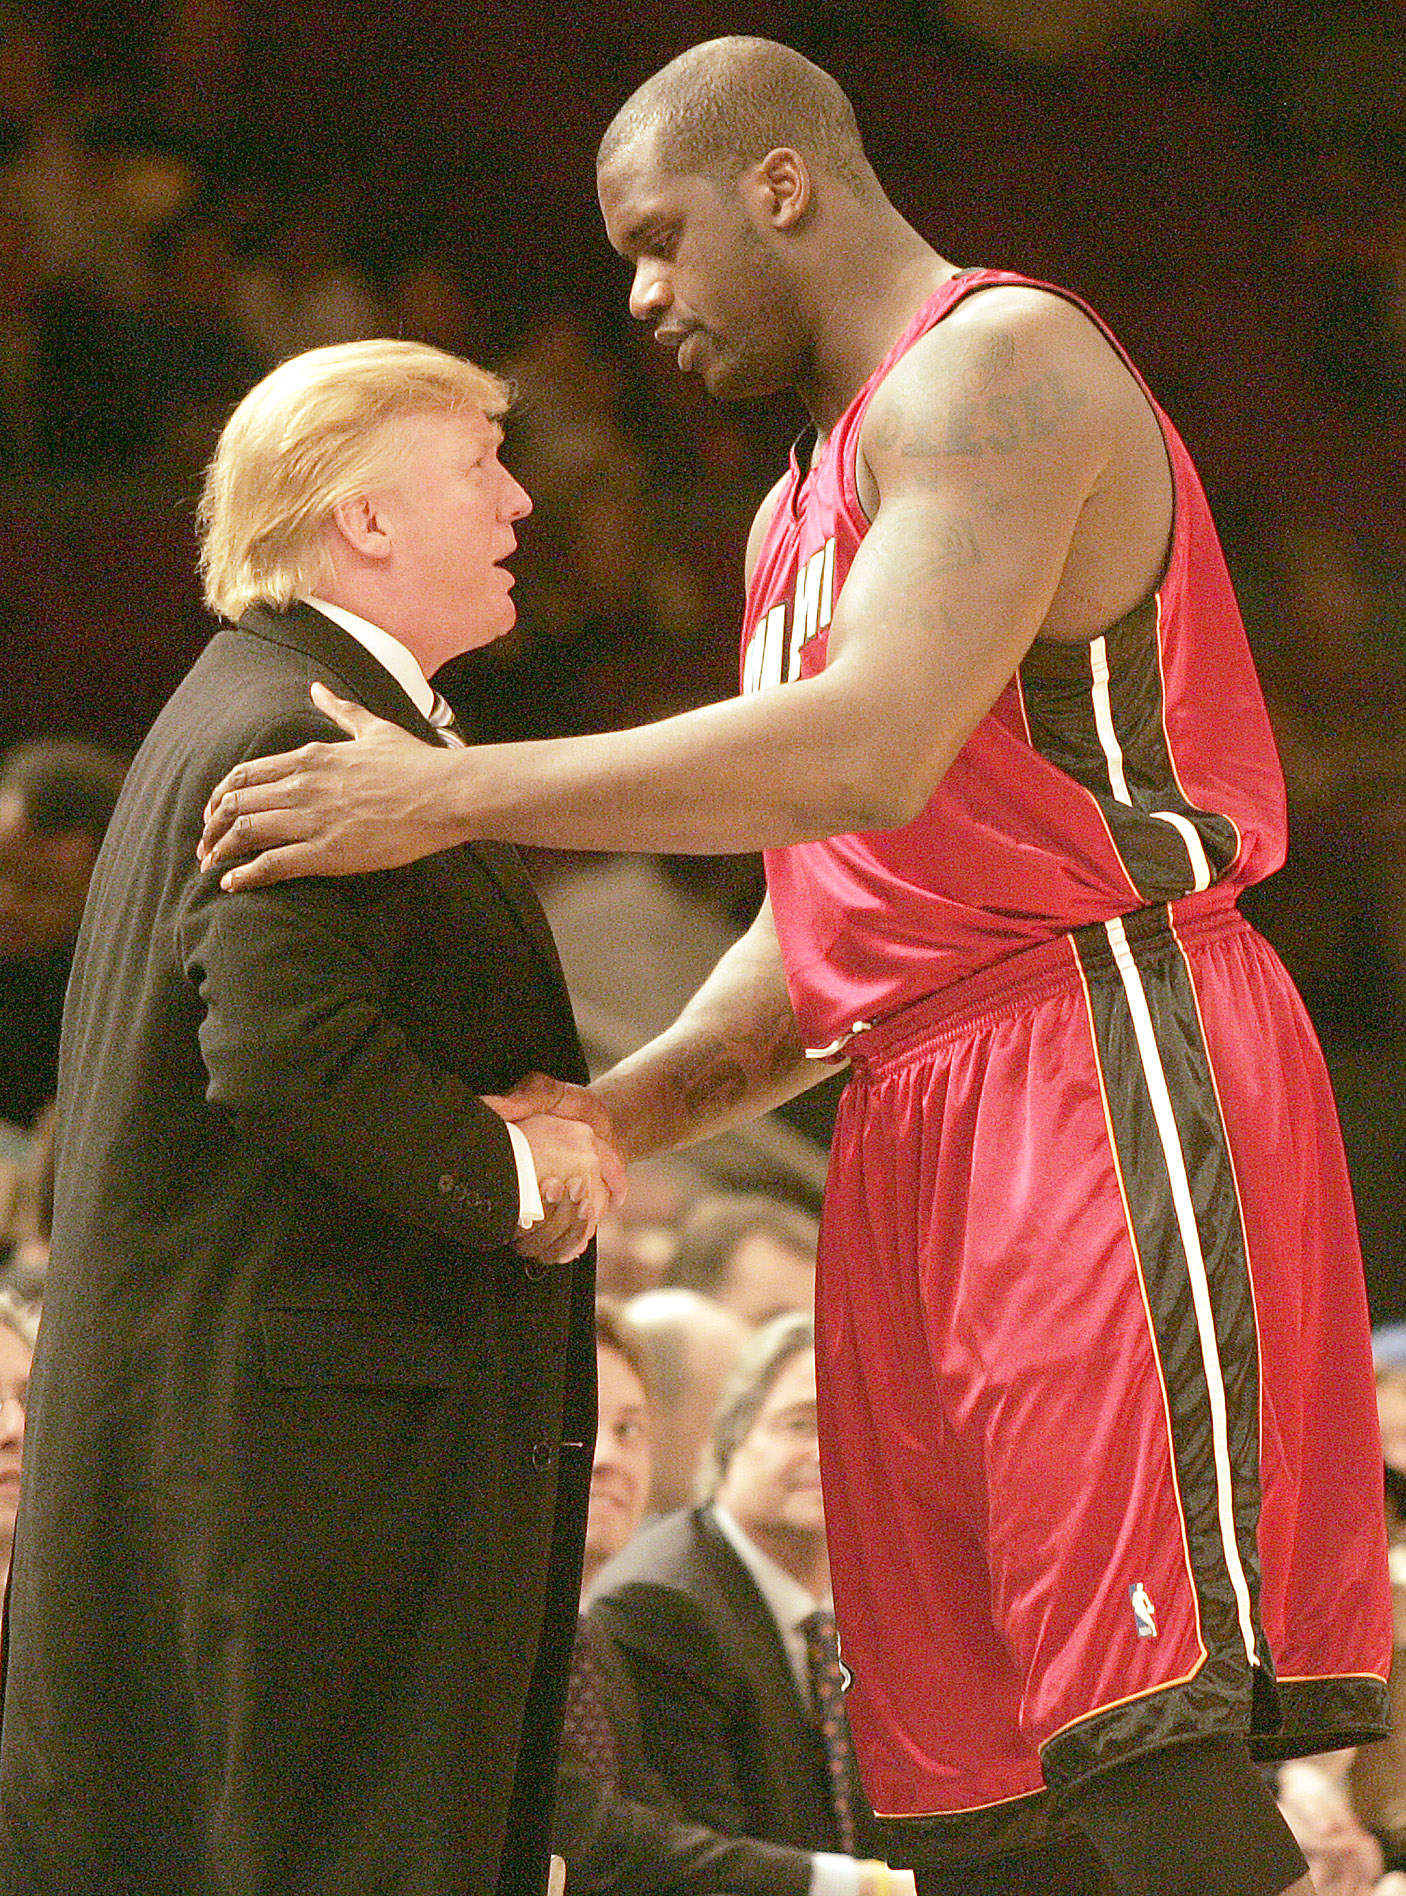 Donald Trump and Shaquille O'Neal shake hands at a game between the Knicks and Heat. (Photo credit: Splash News)